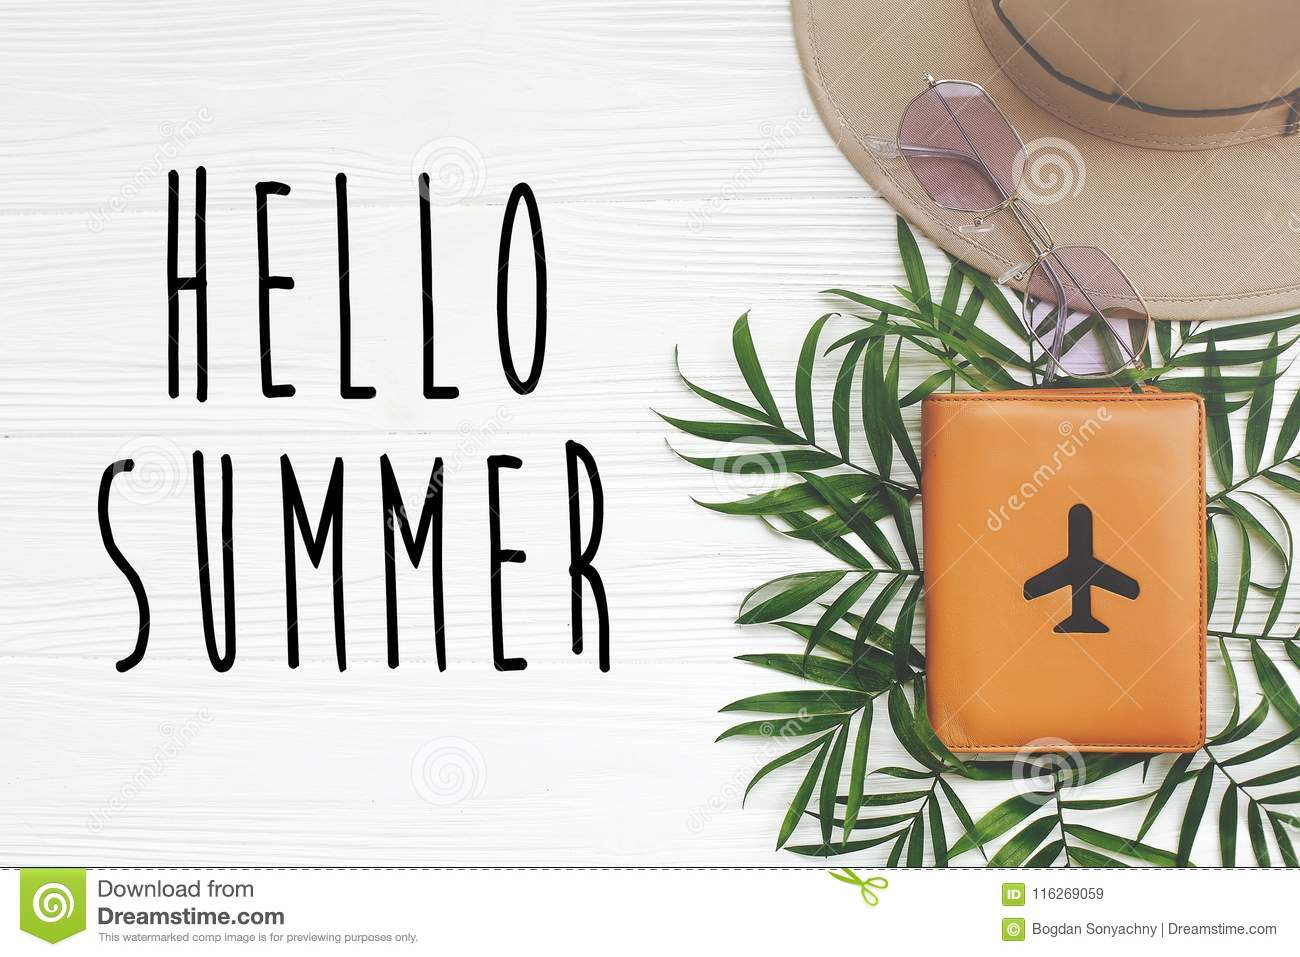 ce0cafeaab9 Hello Summer Text On Passport With Plane And Retro Black Sunglasses ...